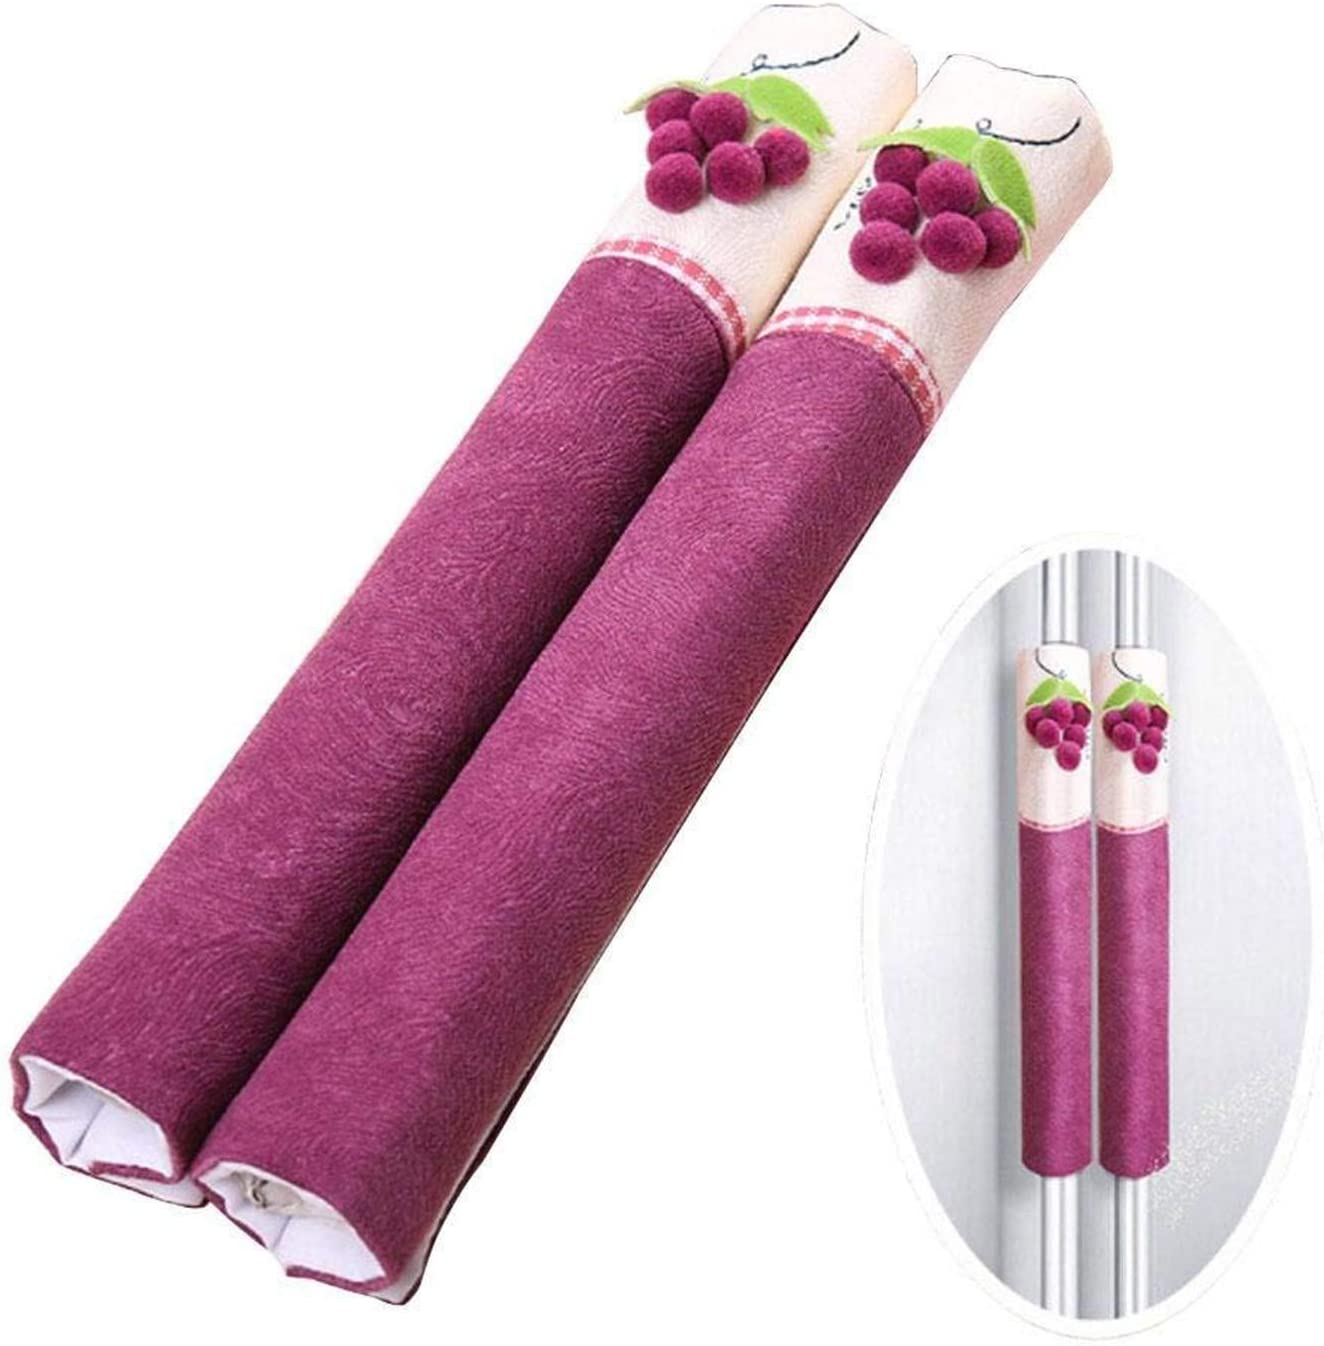 Topgalaxy.Z Refrigerator Door Handle Covers Protective Electrical Kitchen Appliances Gloves Fridge Microwave Dishwasher Door Cloth Protector- Fingerprints Dust Covers Refrigerator Cover (Purple)